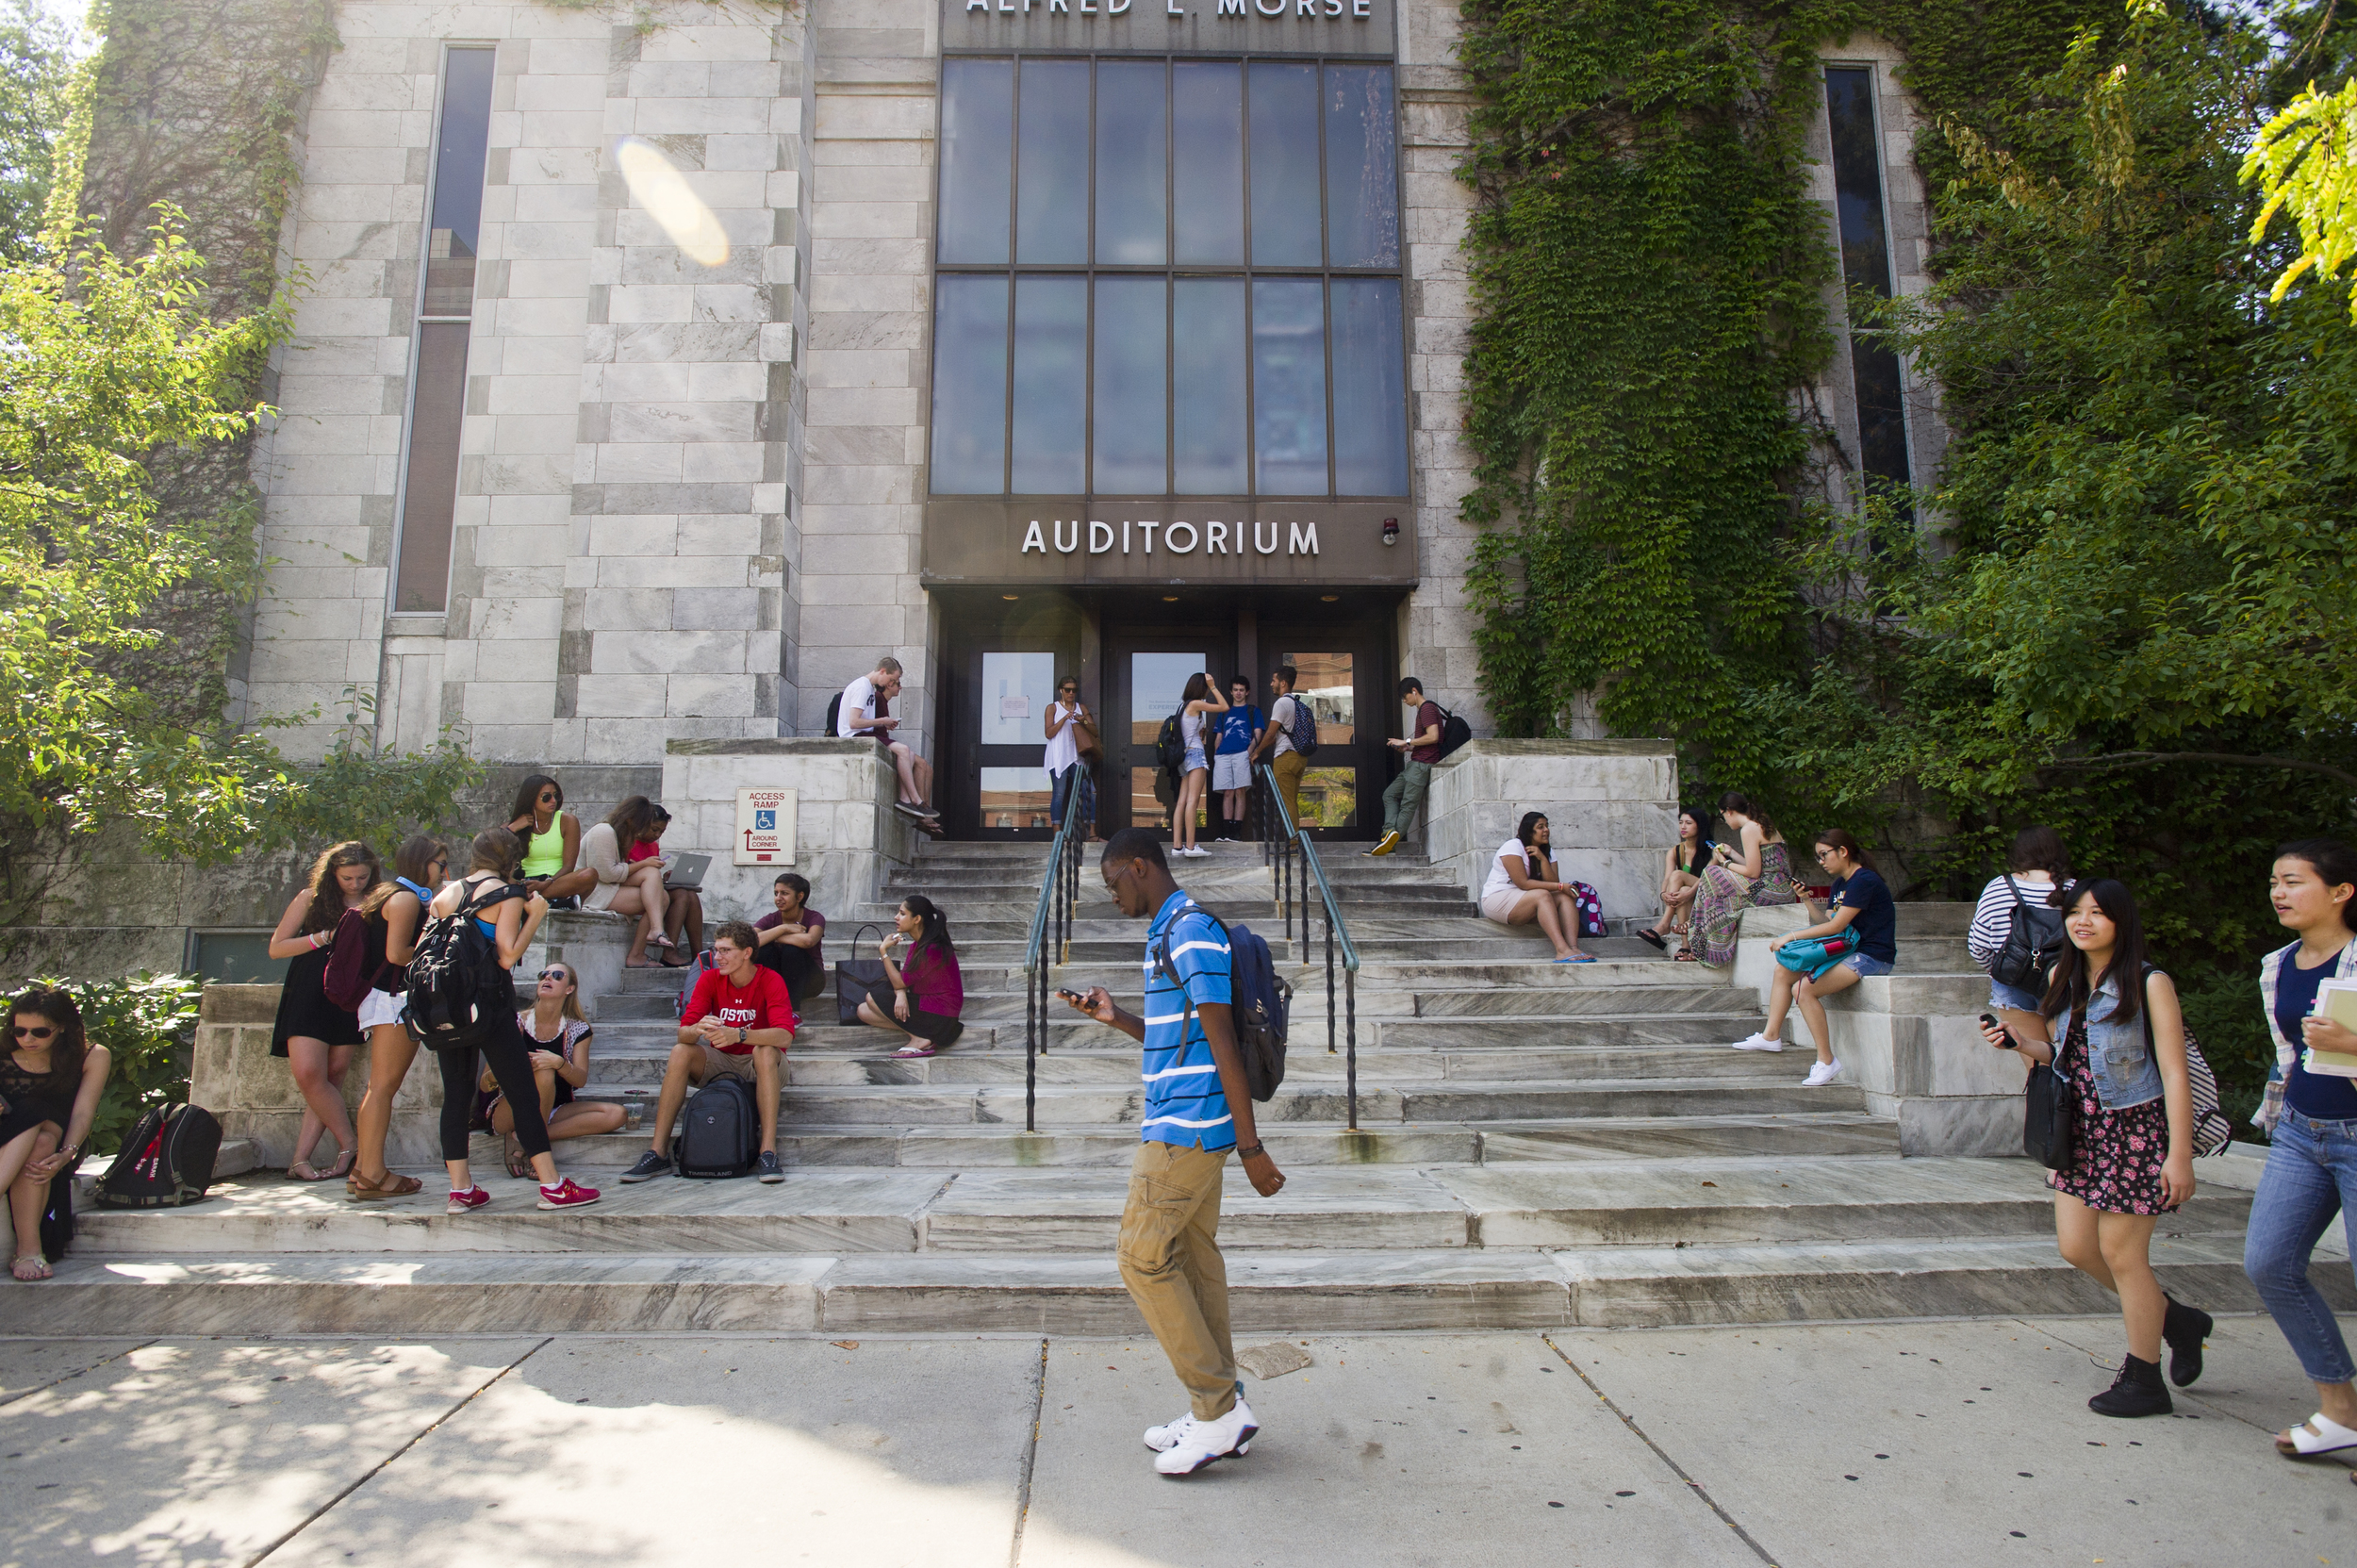 Students come and go from class outside Alfred L Morse Auditorium in the morning of September 5, 2014.  Photo by Cydney Scott for Boston University Photography